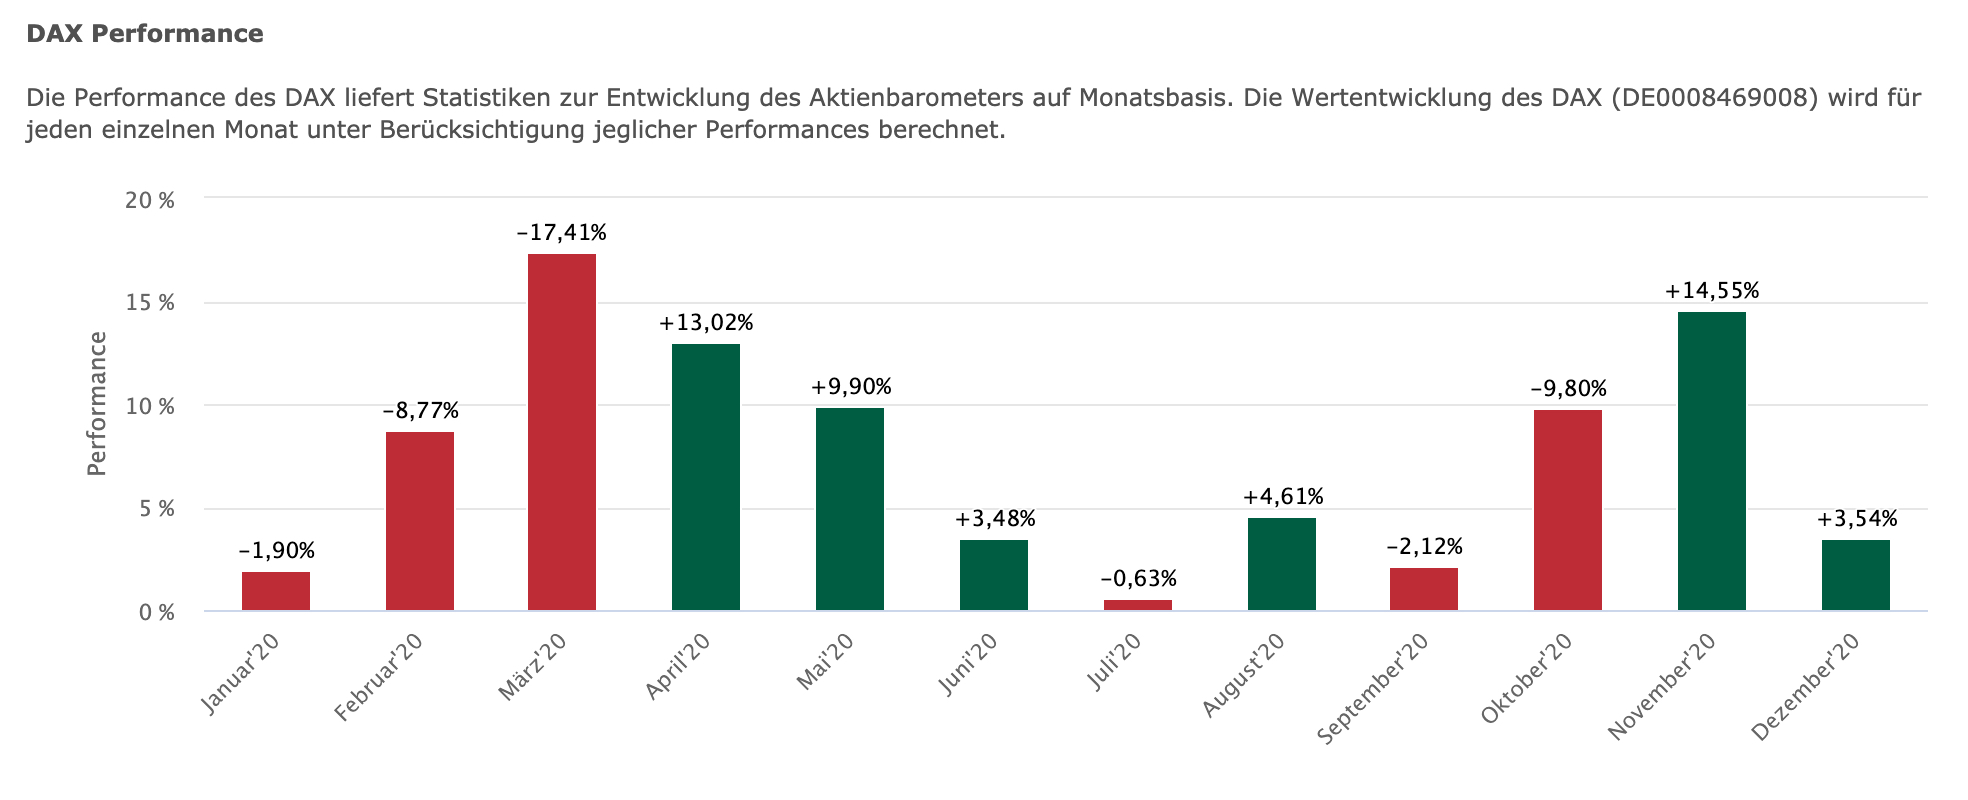 DAX-Performance der Monate